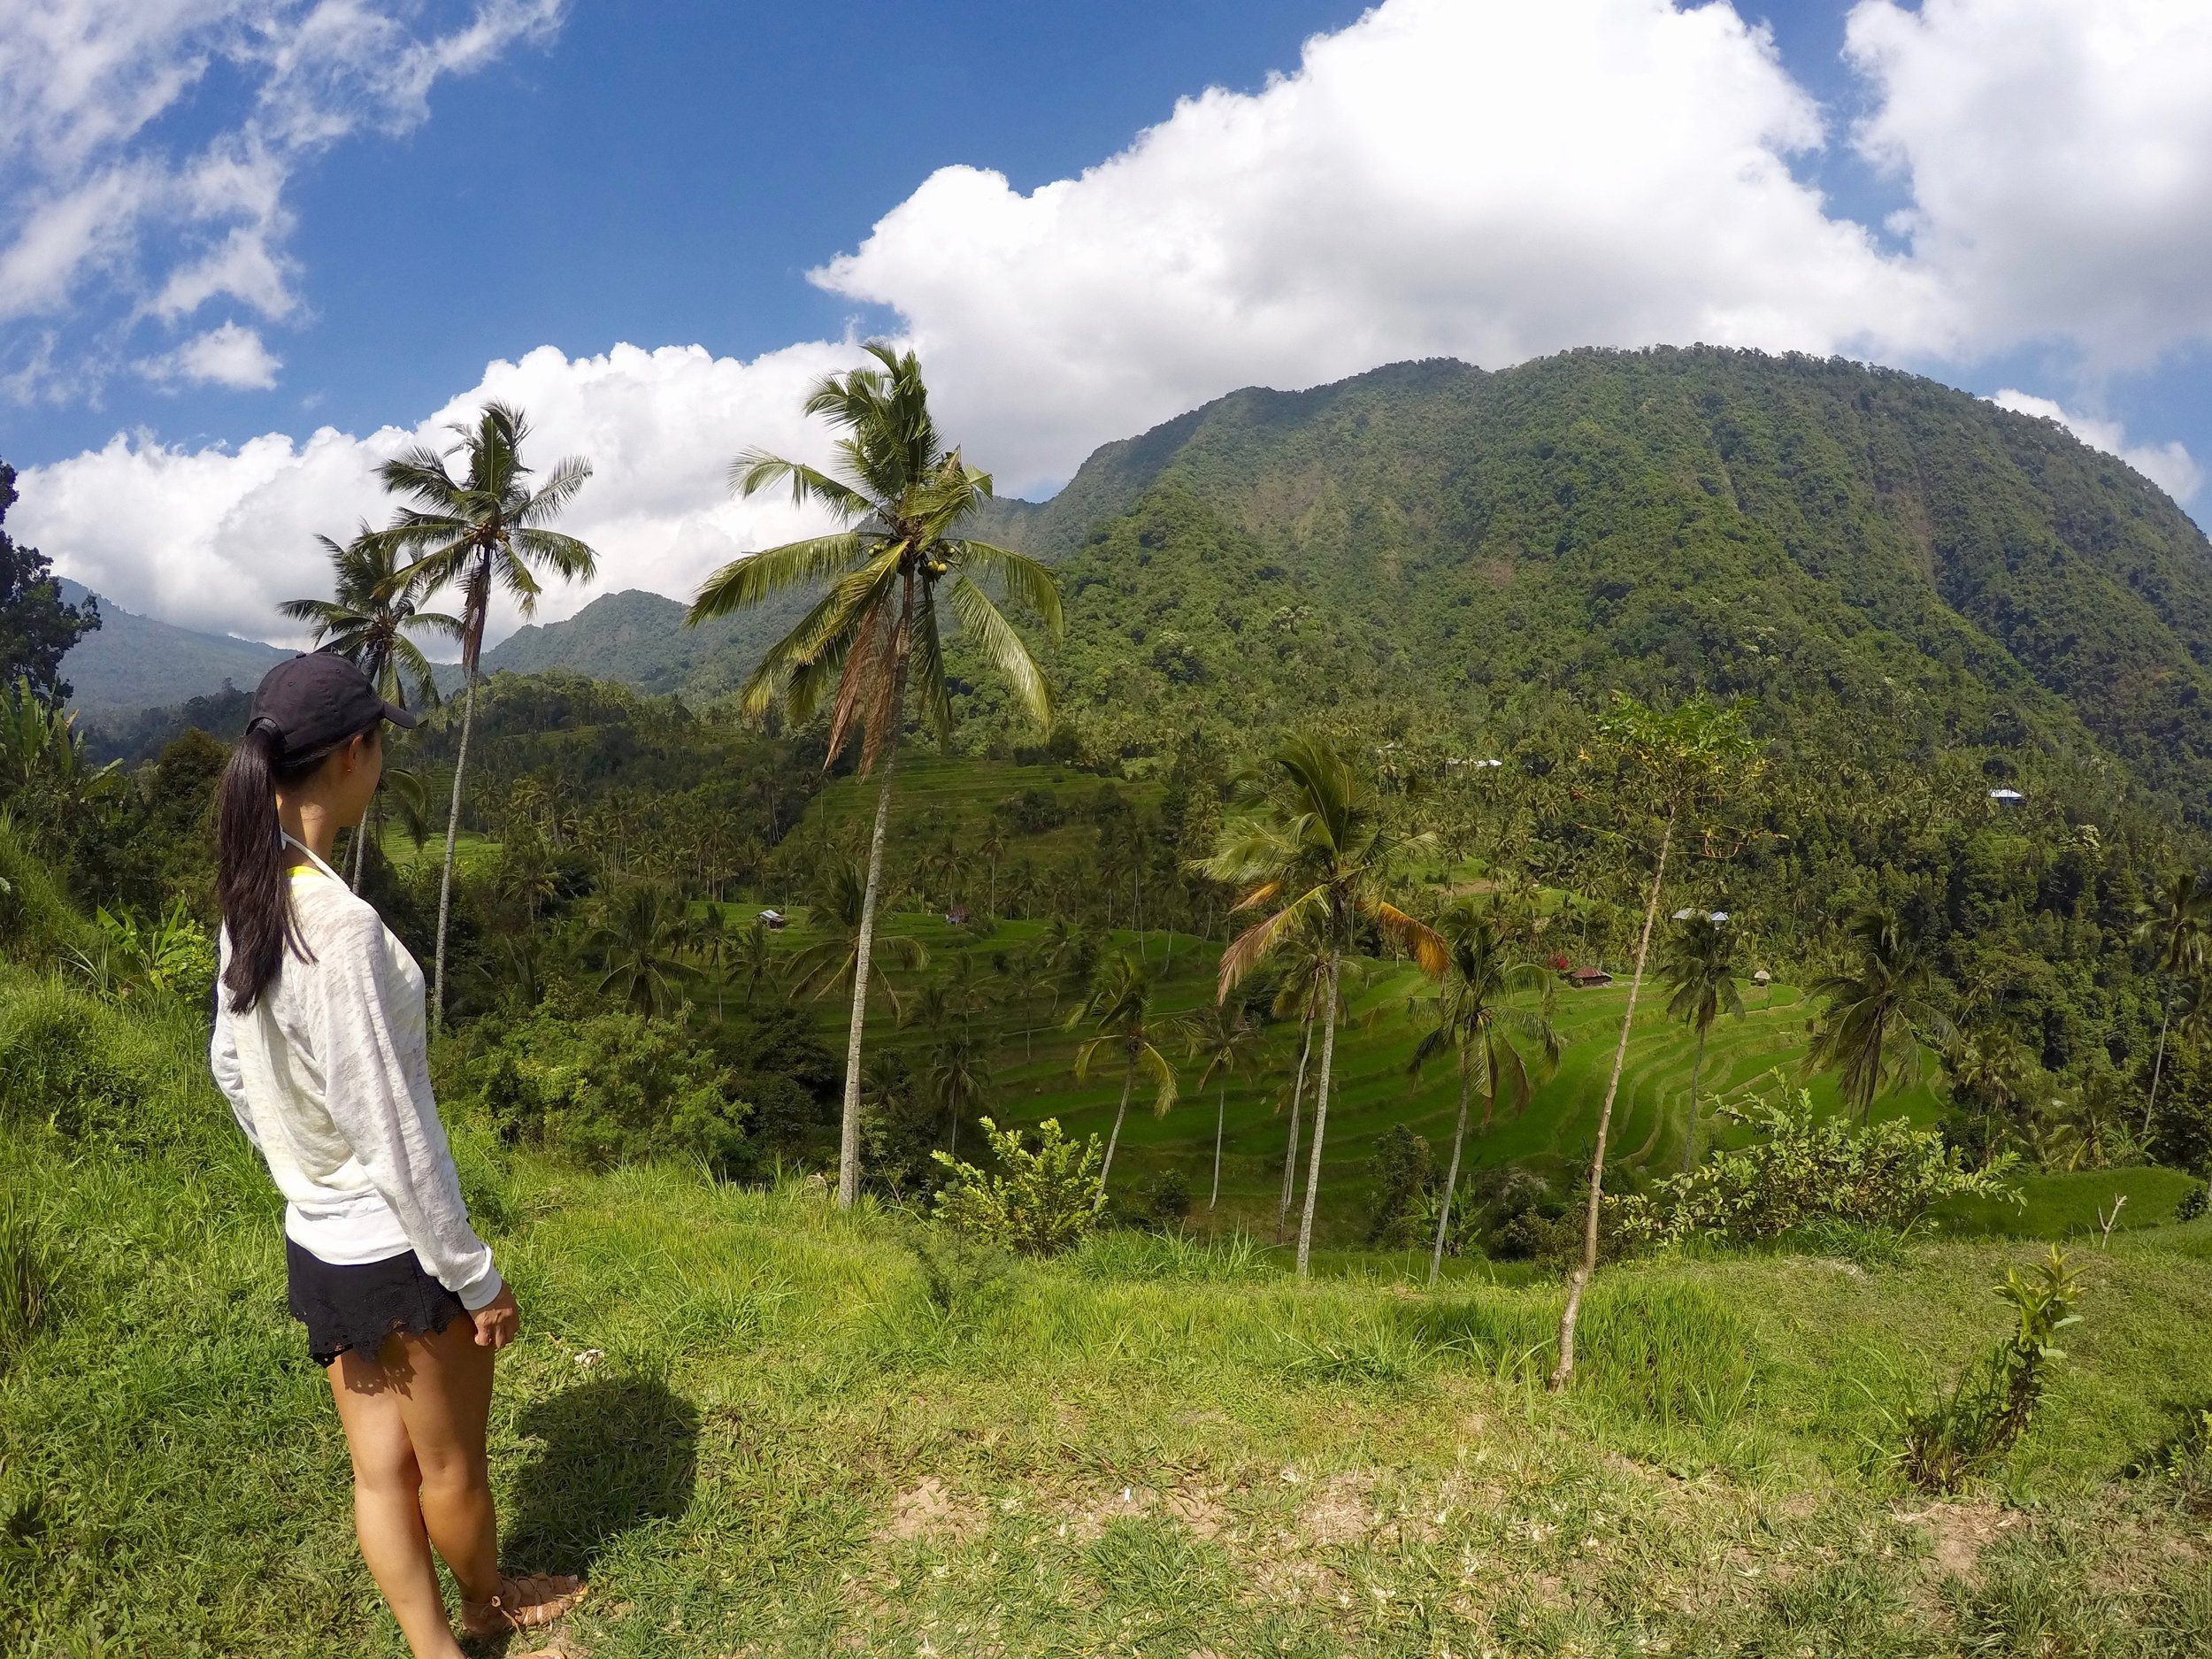 Looking over the Lemukih rice fields down in one of the valleys